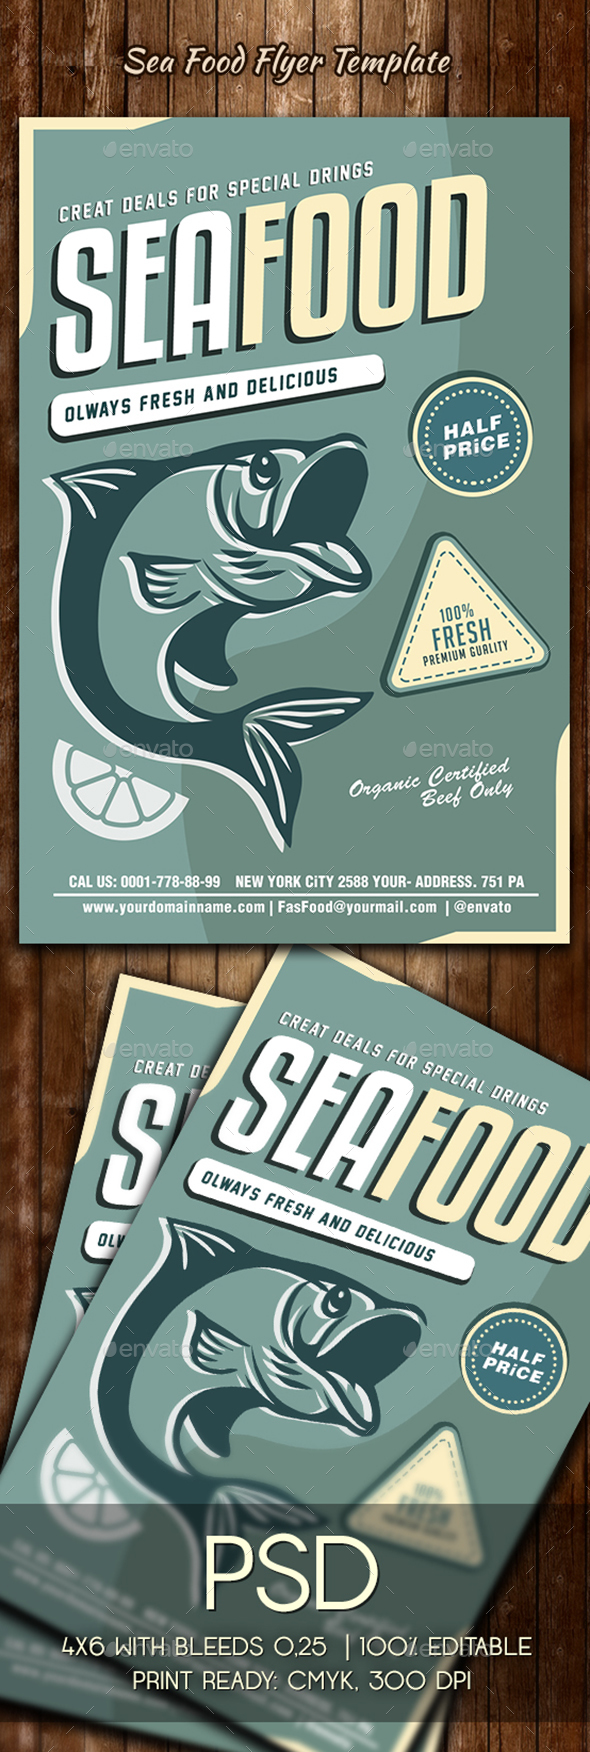 Seafood Flyer Template